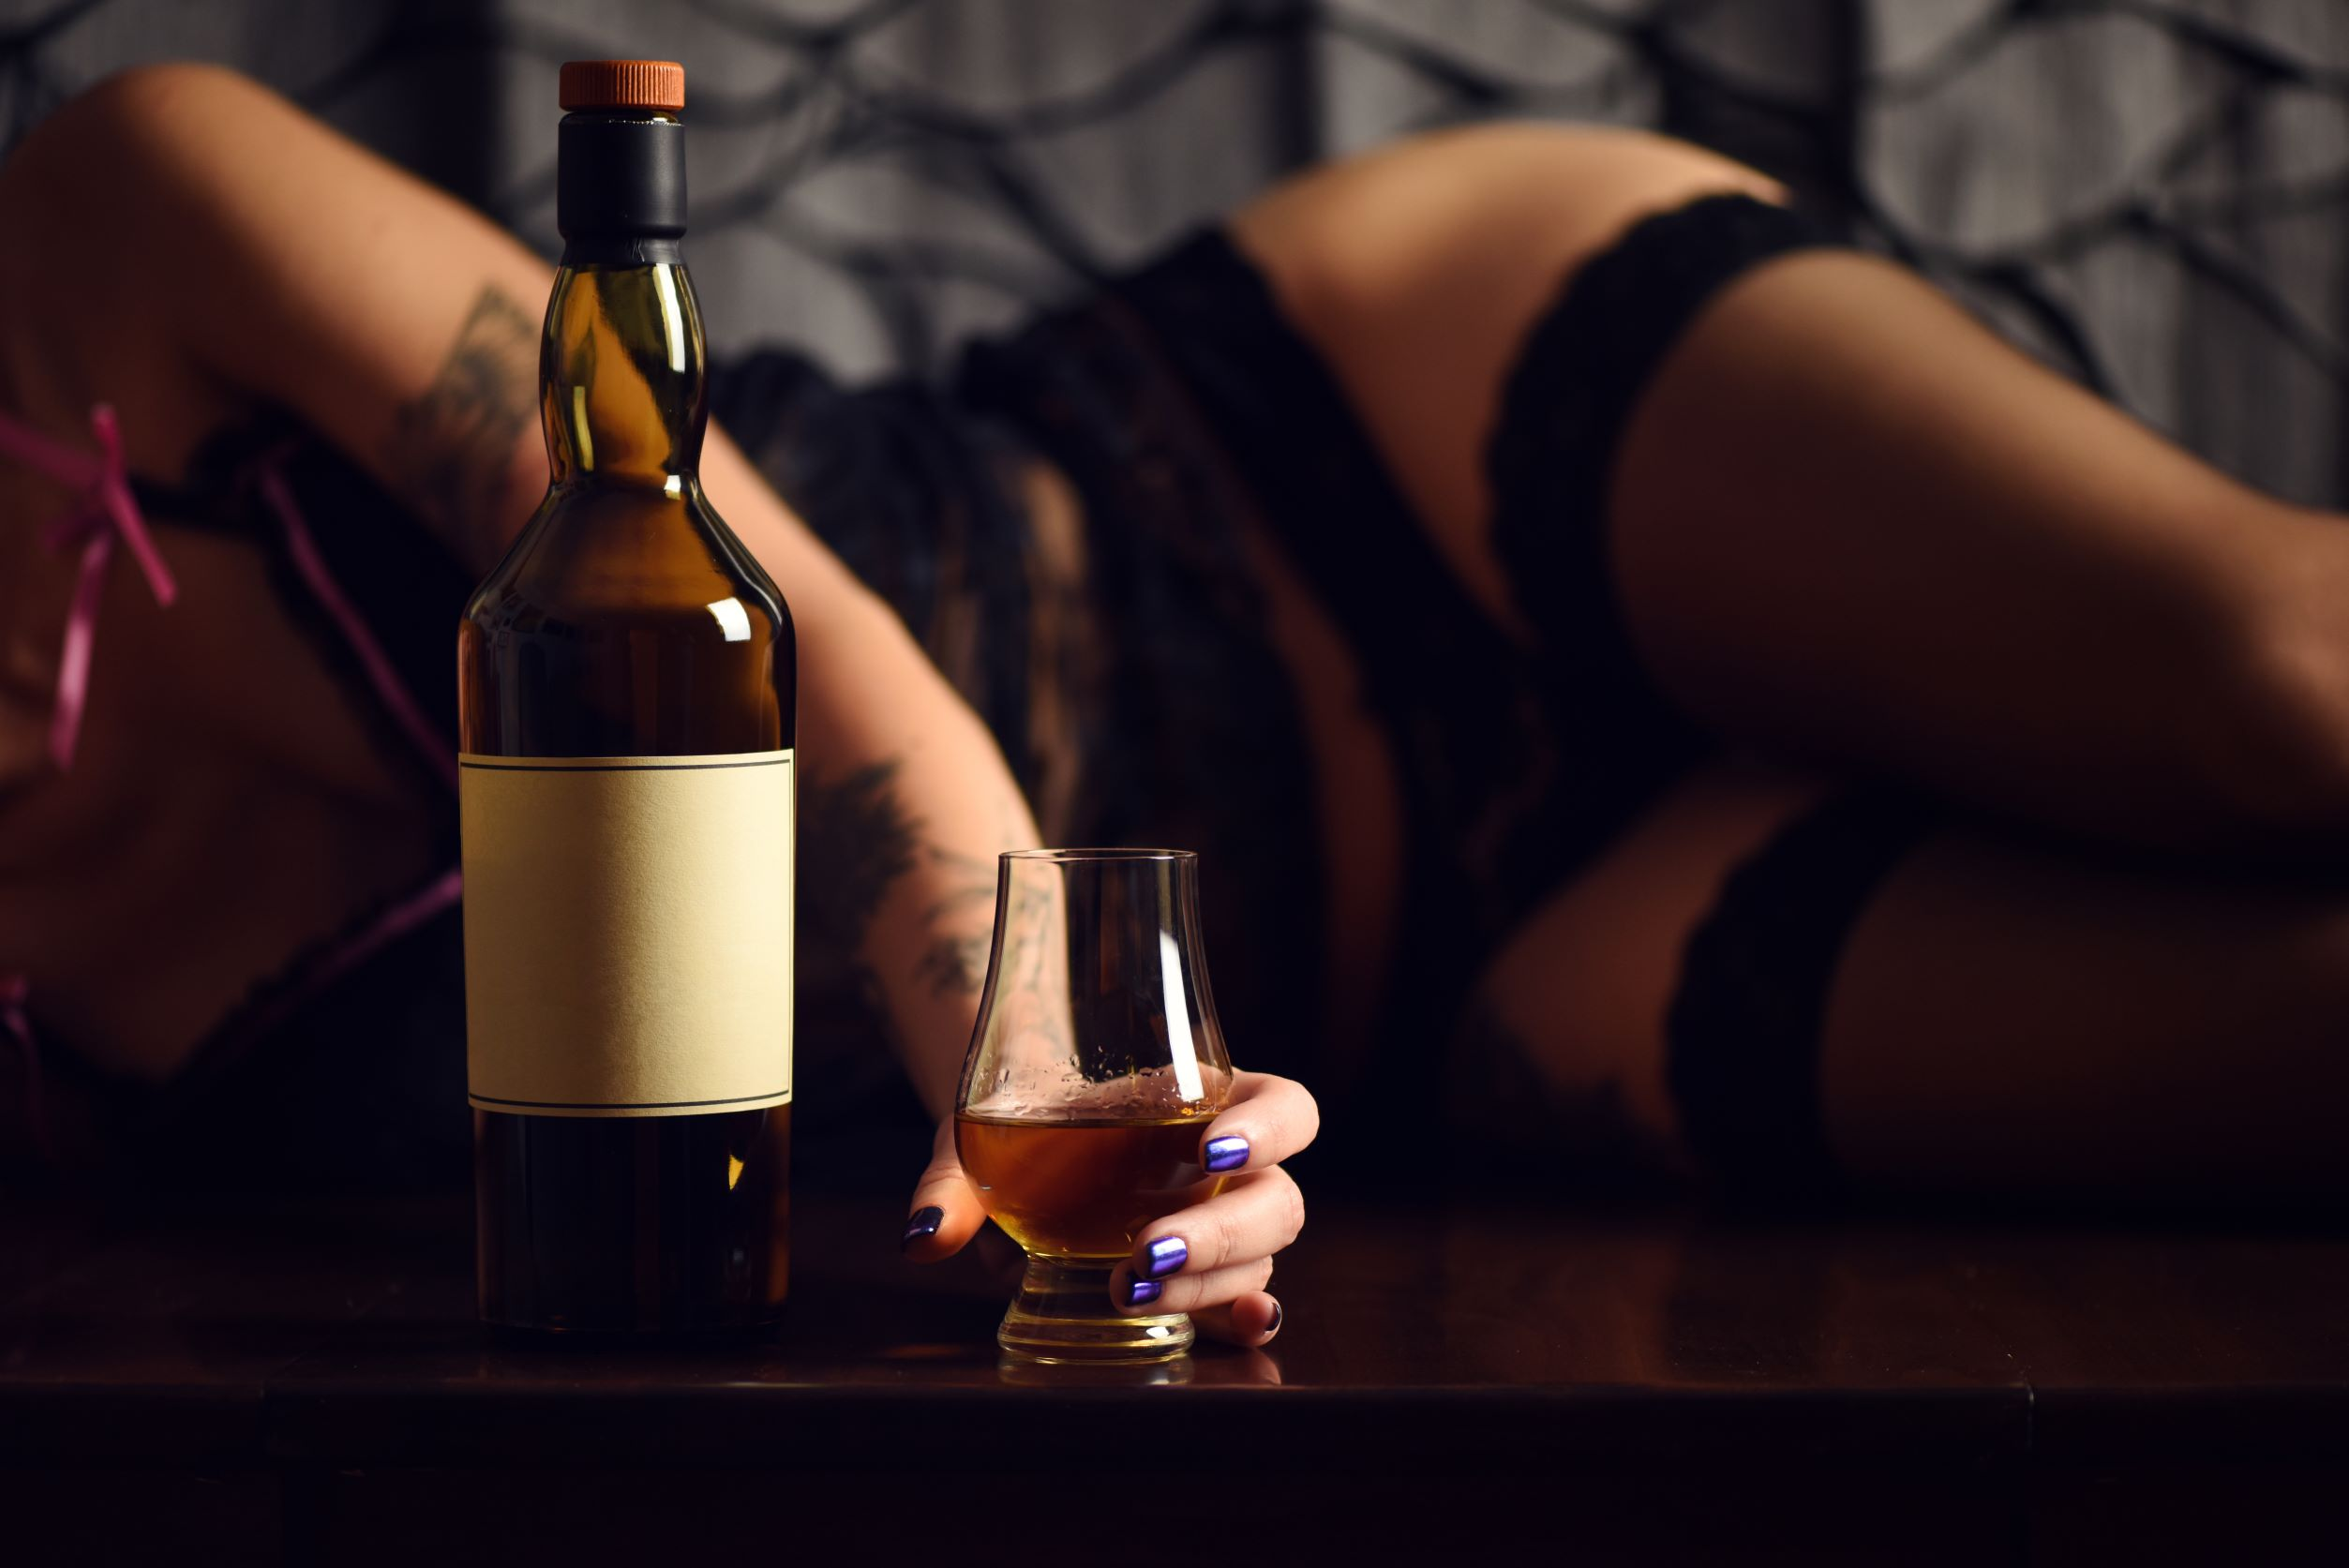 Woman laying on side in lingerie and stockings holding glass with alcohol bottle